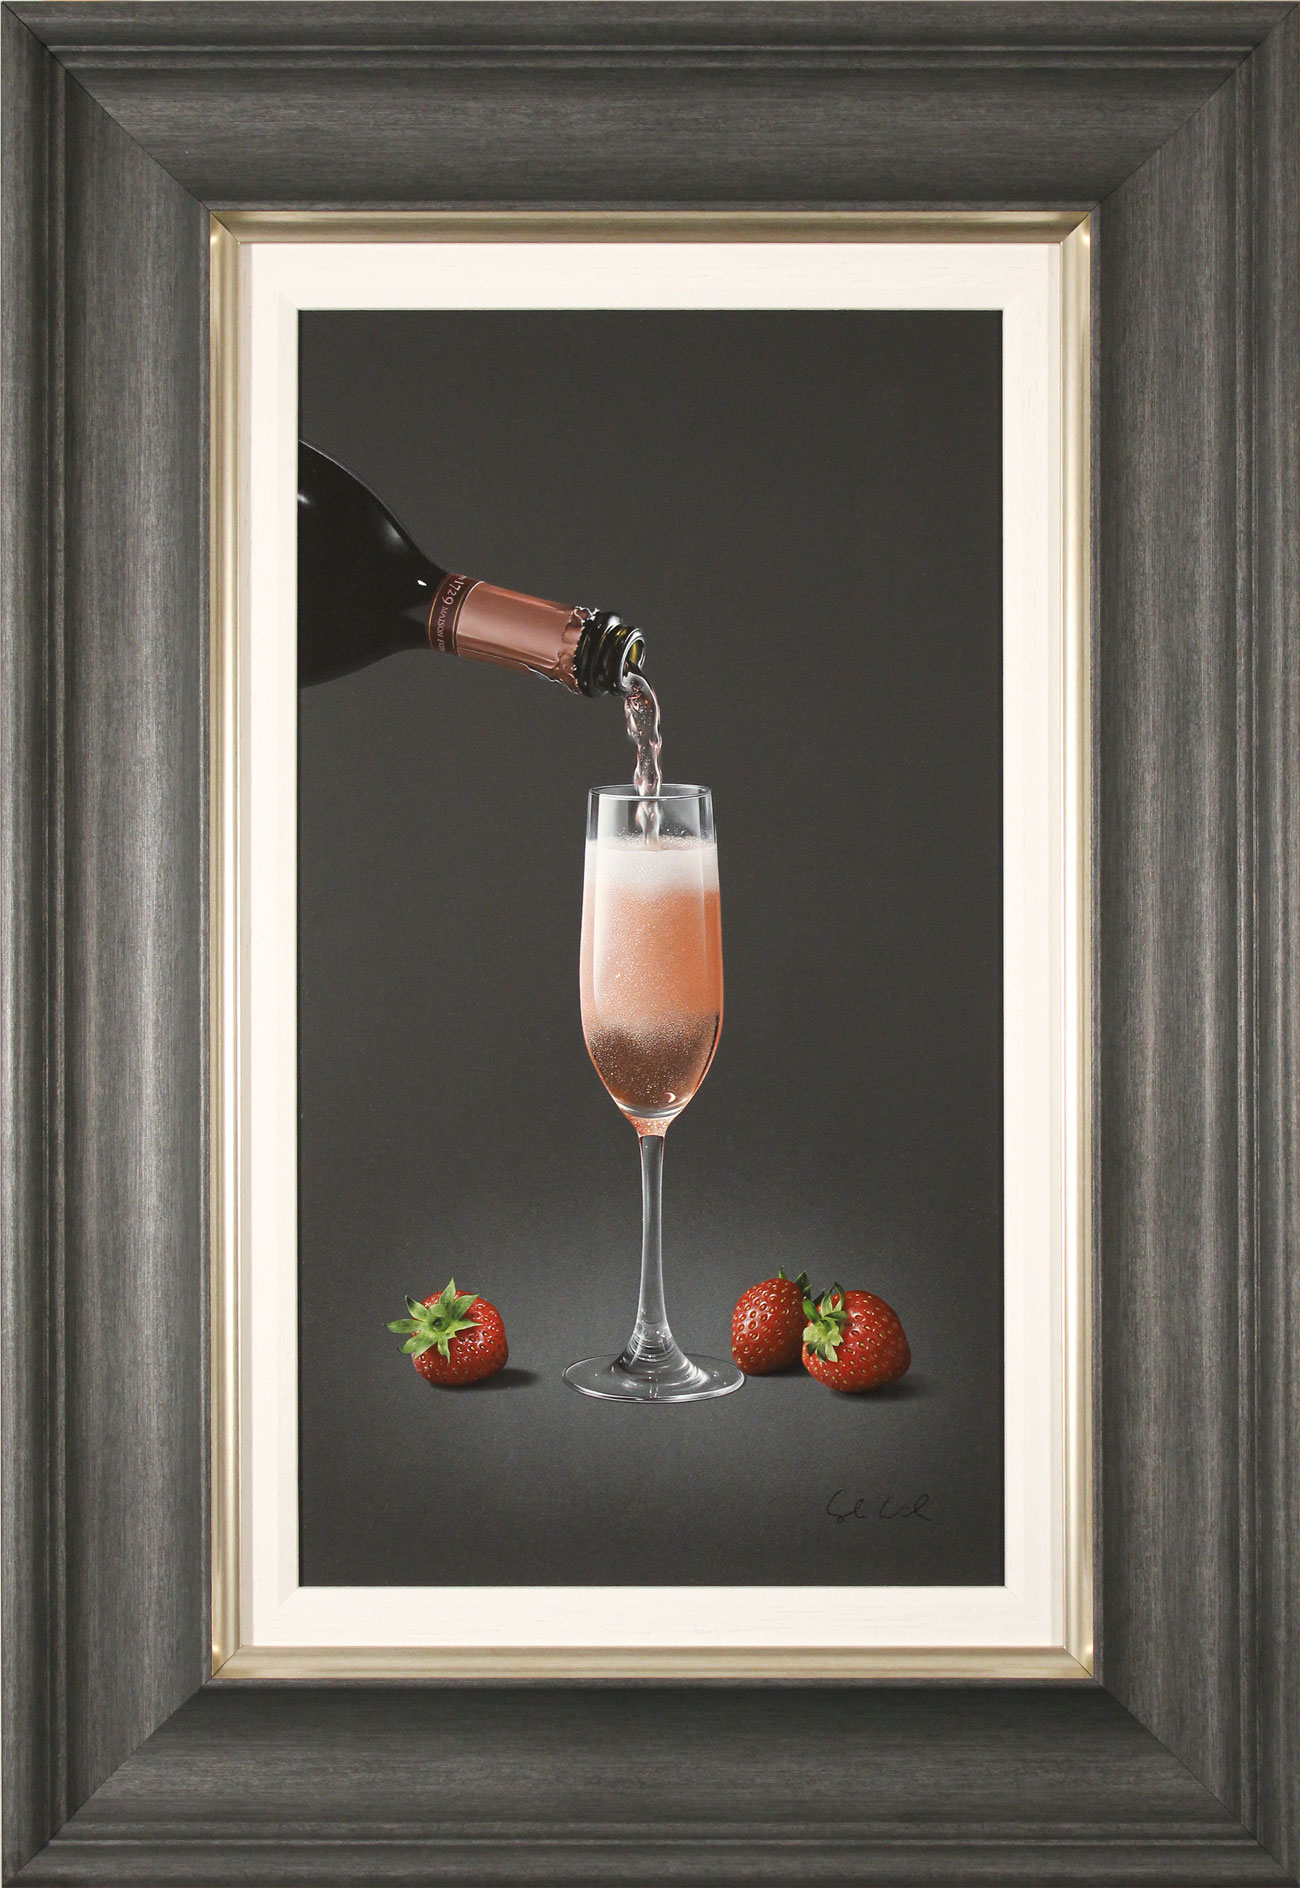 Colin Wilson, Original acrylic painting on board, Sparkling Rosé and Strawberries, click to enlarge